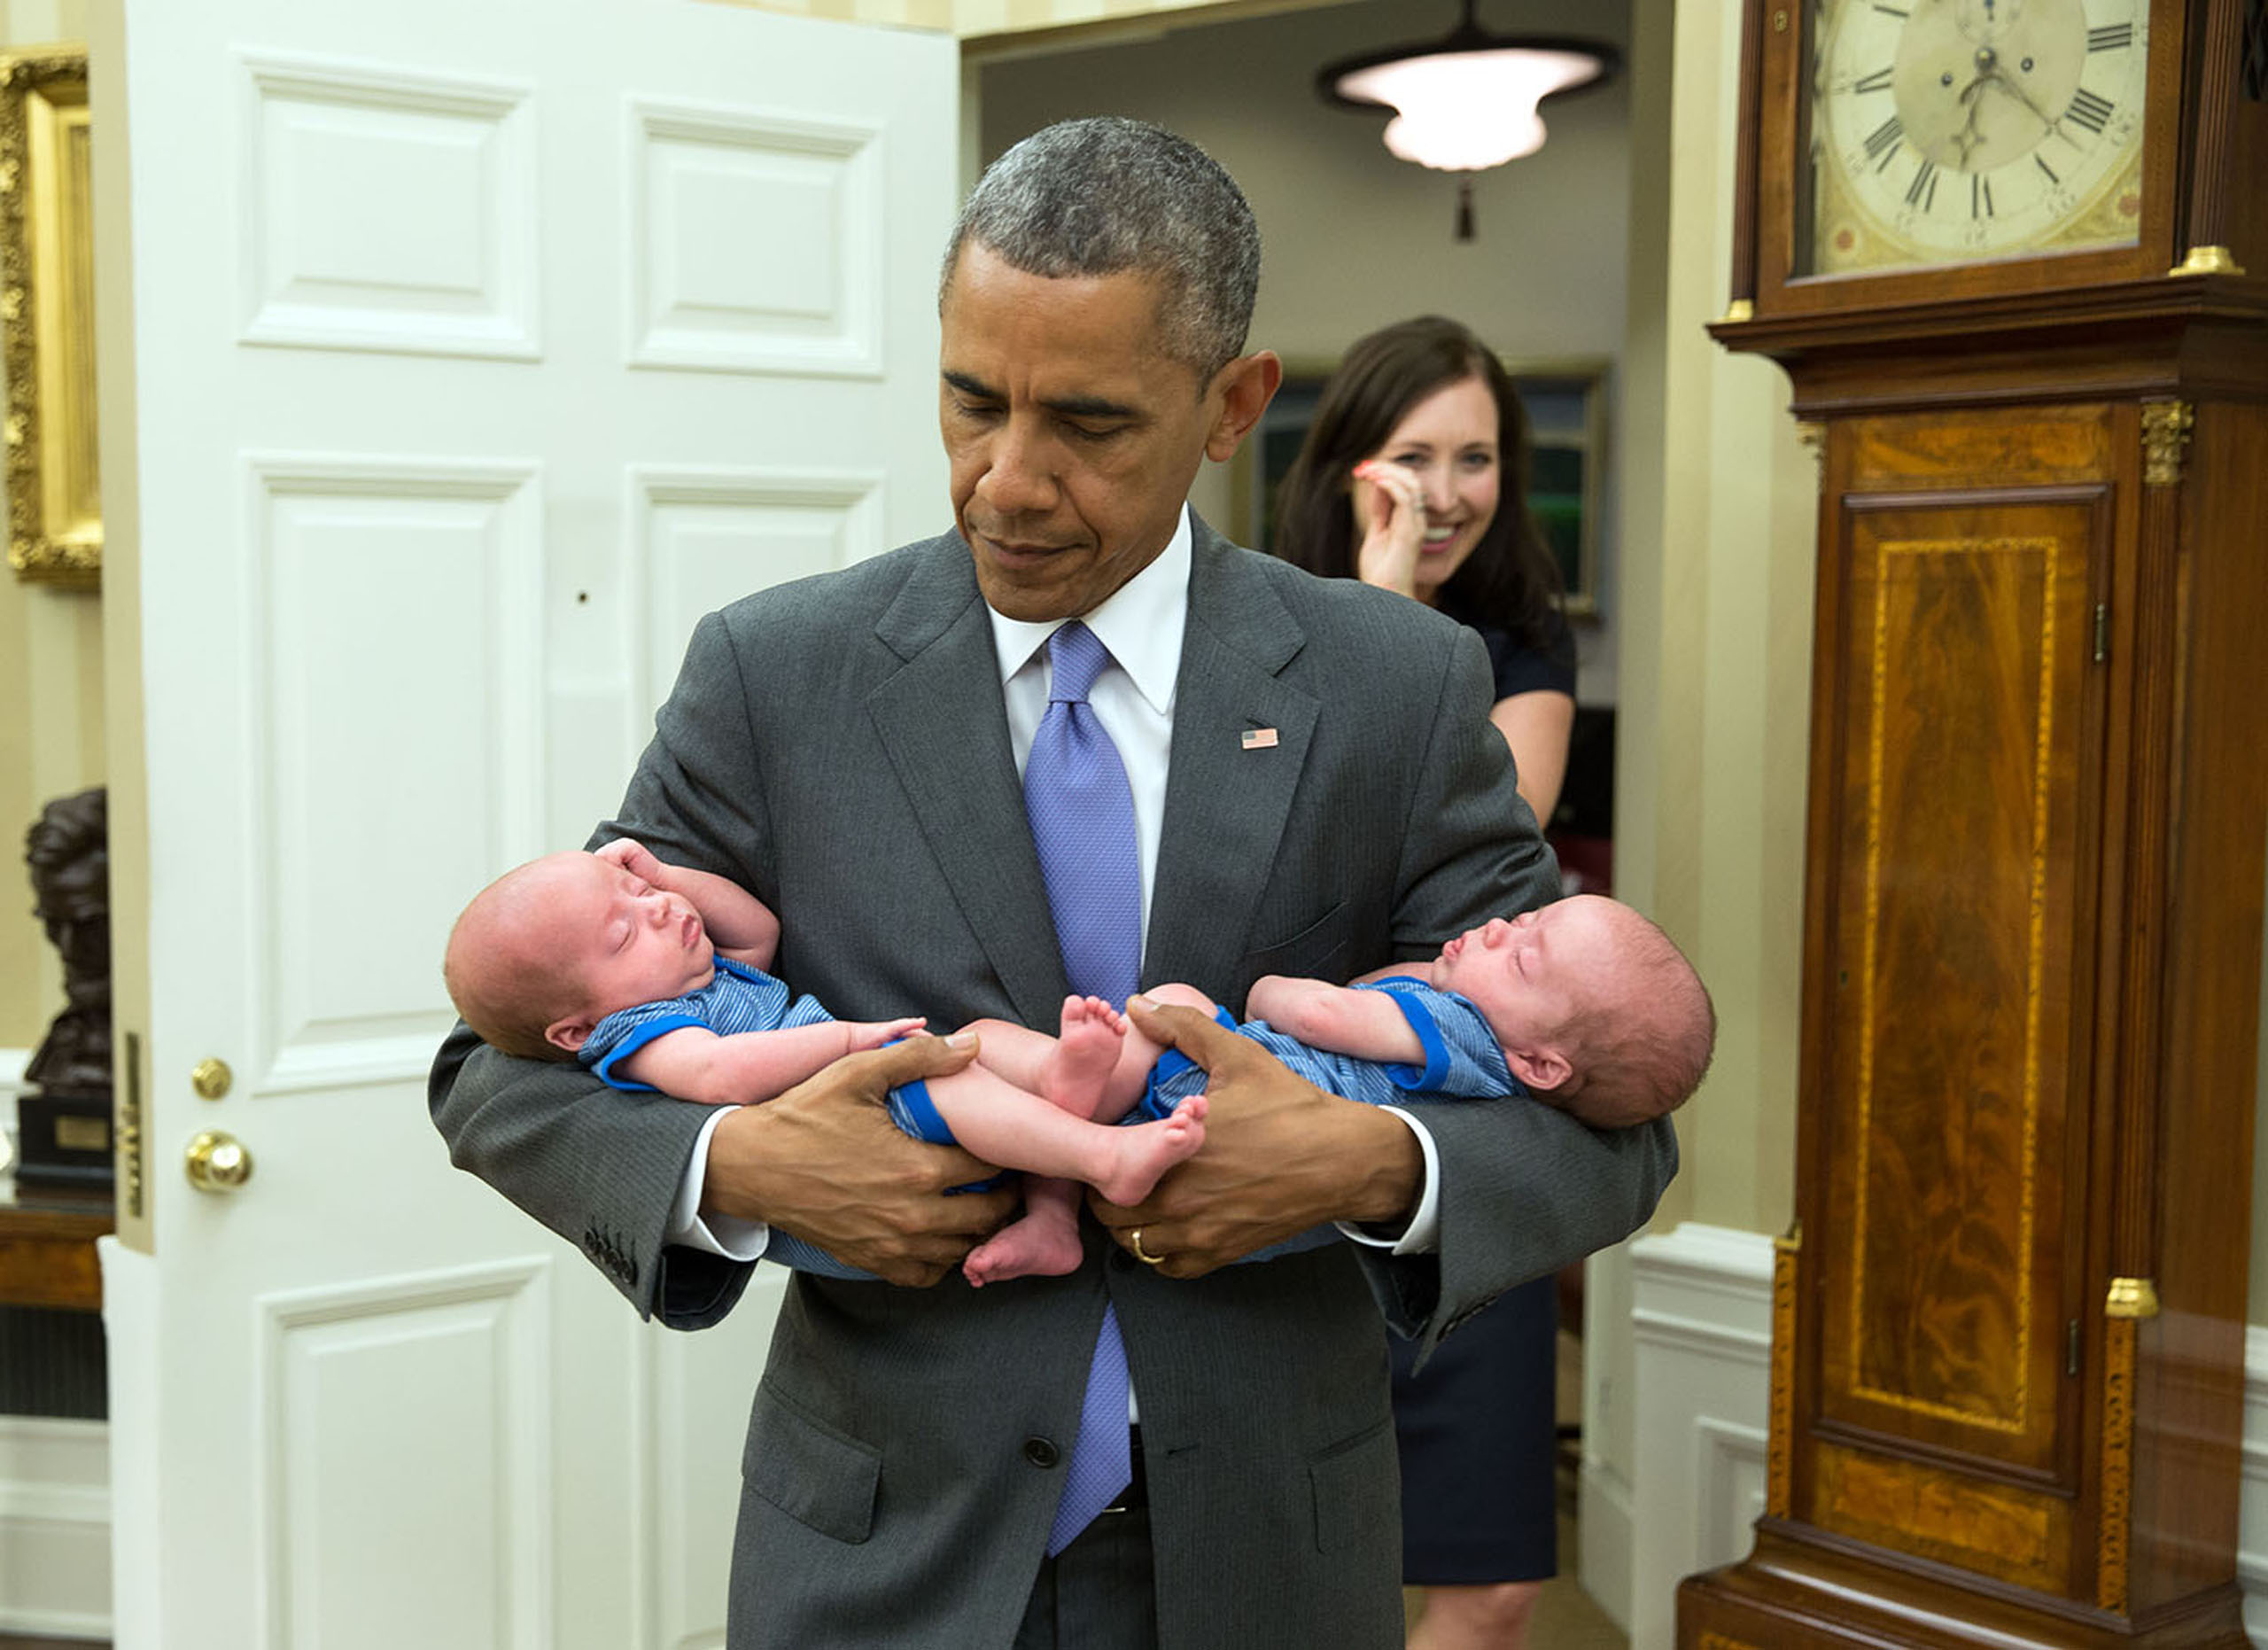 Obama carries the twin boys of Katie Beirne Fallon, Director of Legislative Affairs, into the Oval Office just a few months after they were born on June 17, 2015.